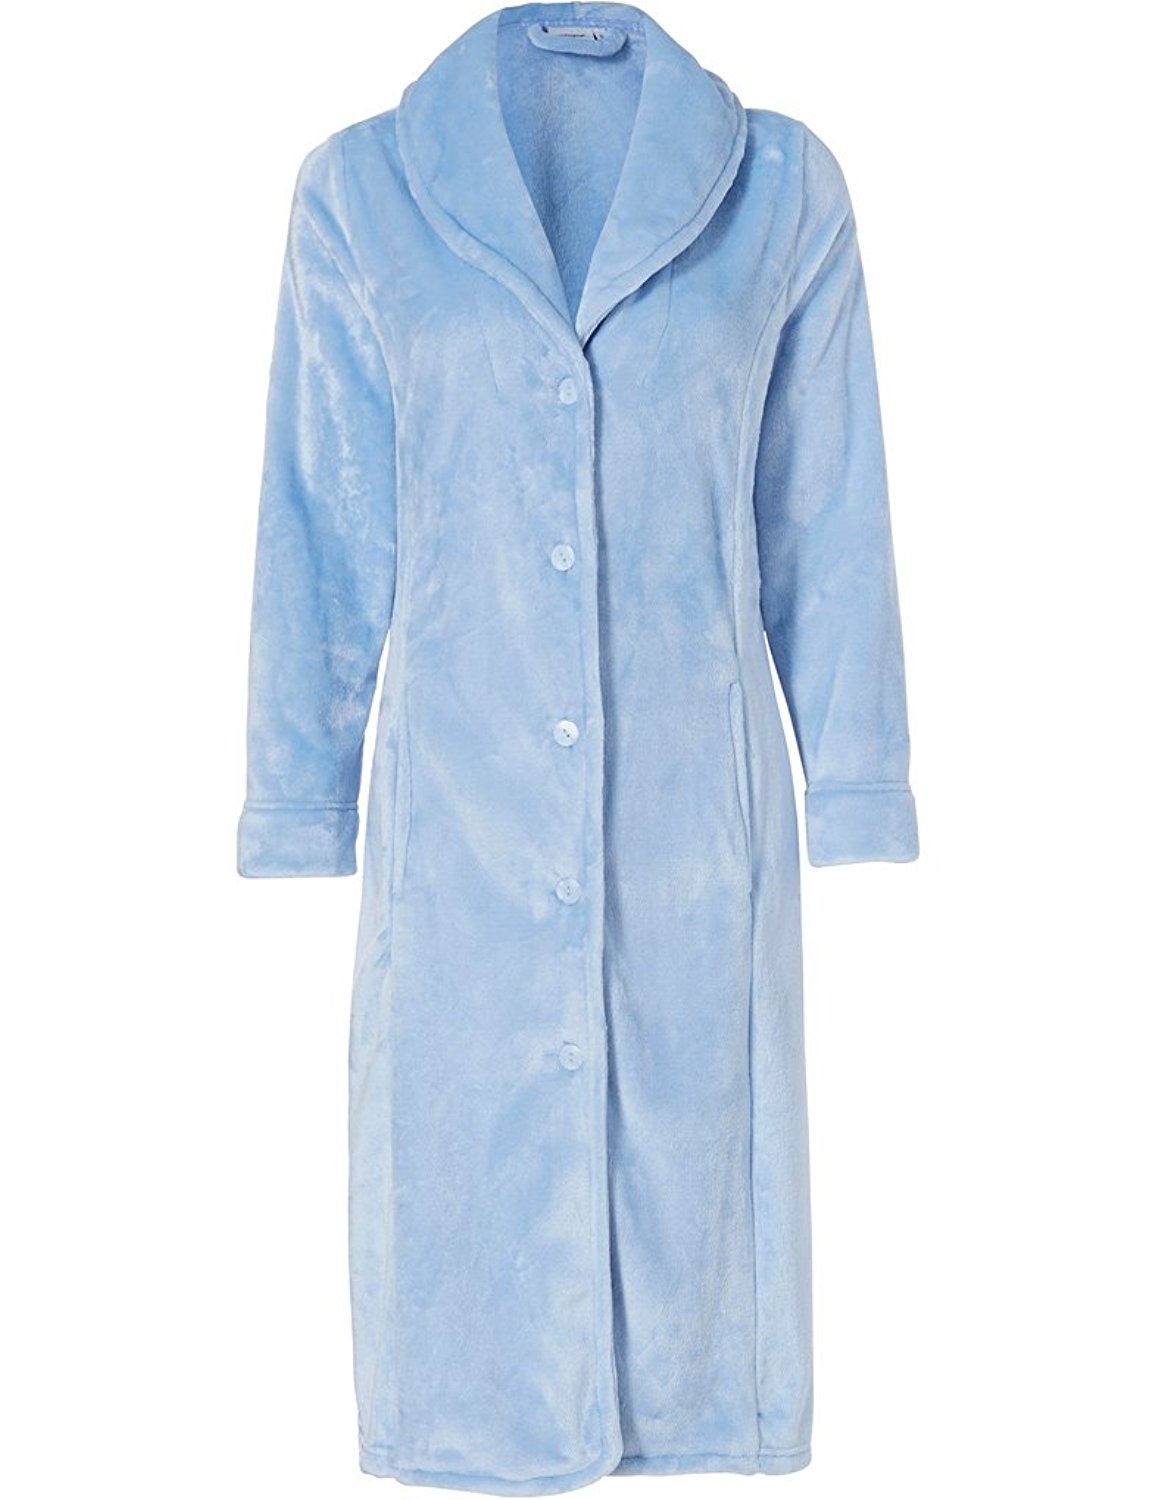 418cbec2ed49 Get Quotations · Pastunette 7072-365-9-956 Women s Silver Dressing Gown  Dressing Gown